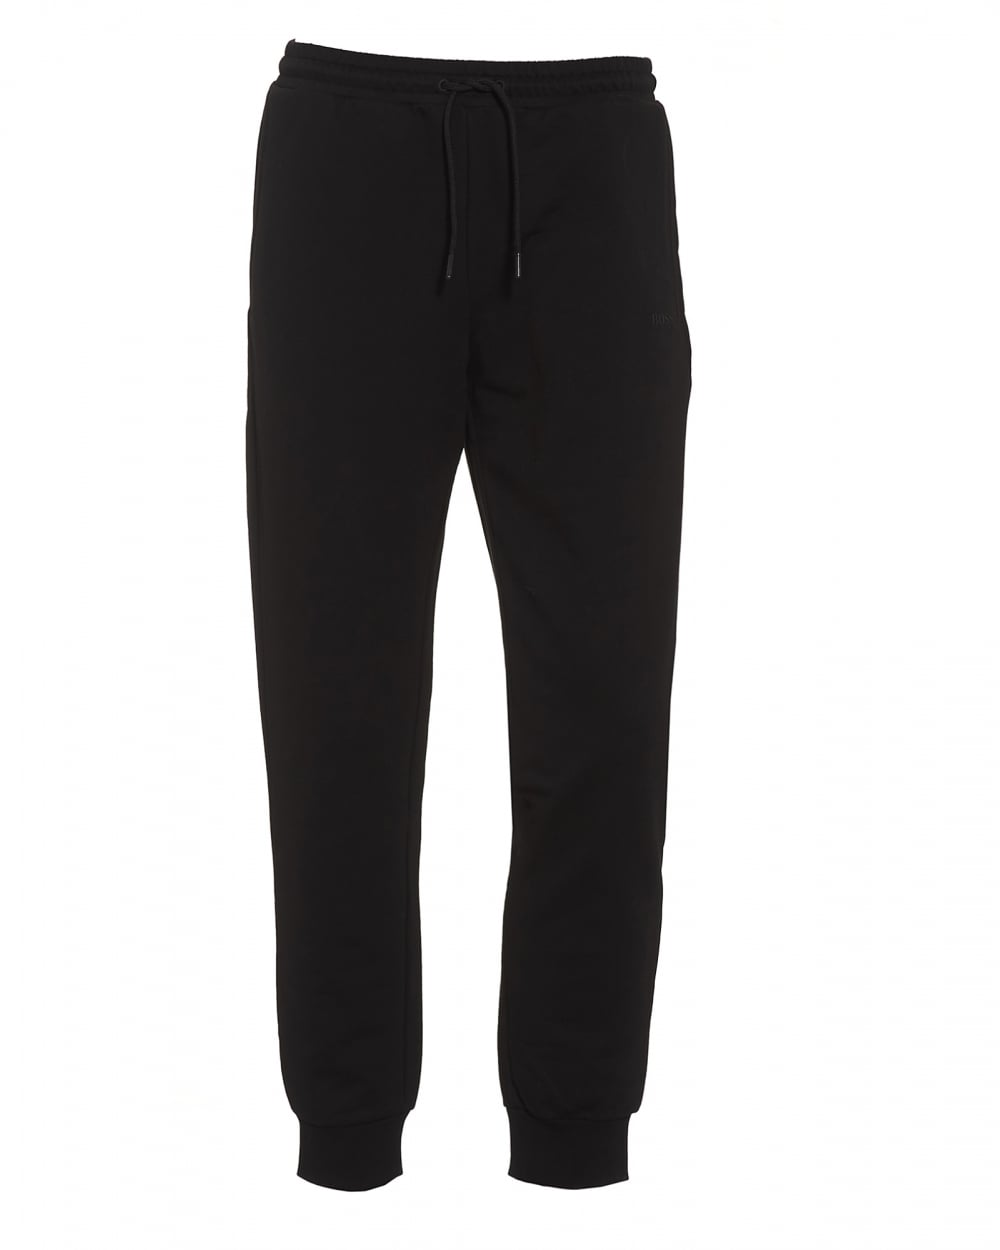 popular stores look good shoes sale for sale Mens Hivon Tracksuit Bottoms, Black Sweat Pants